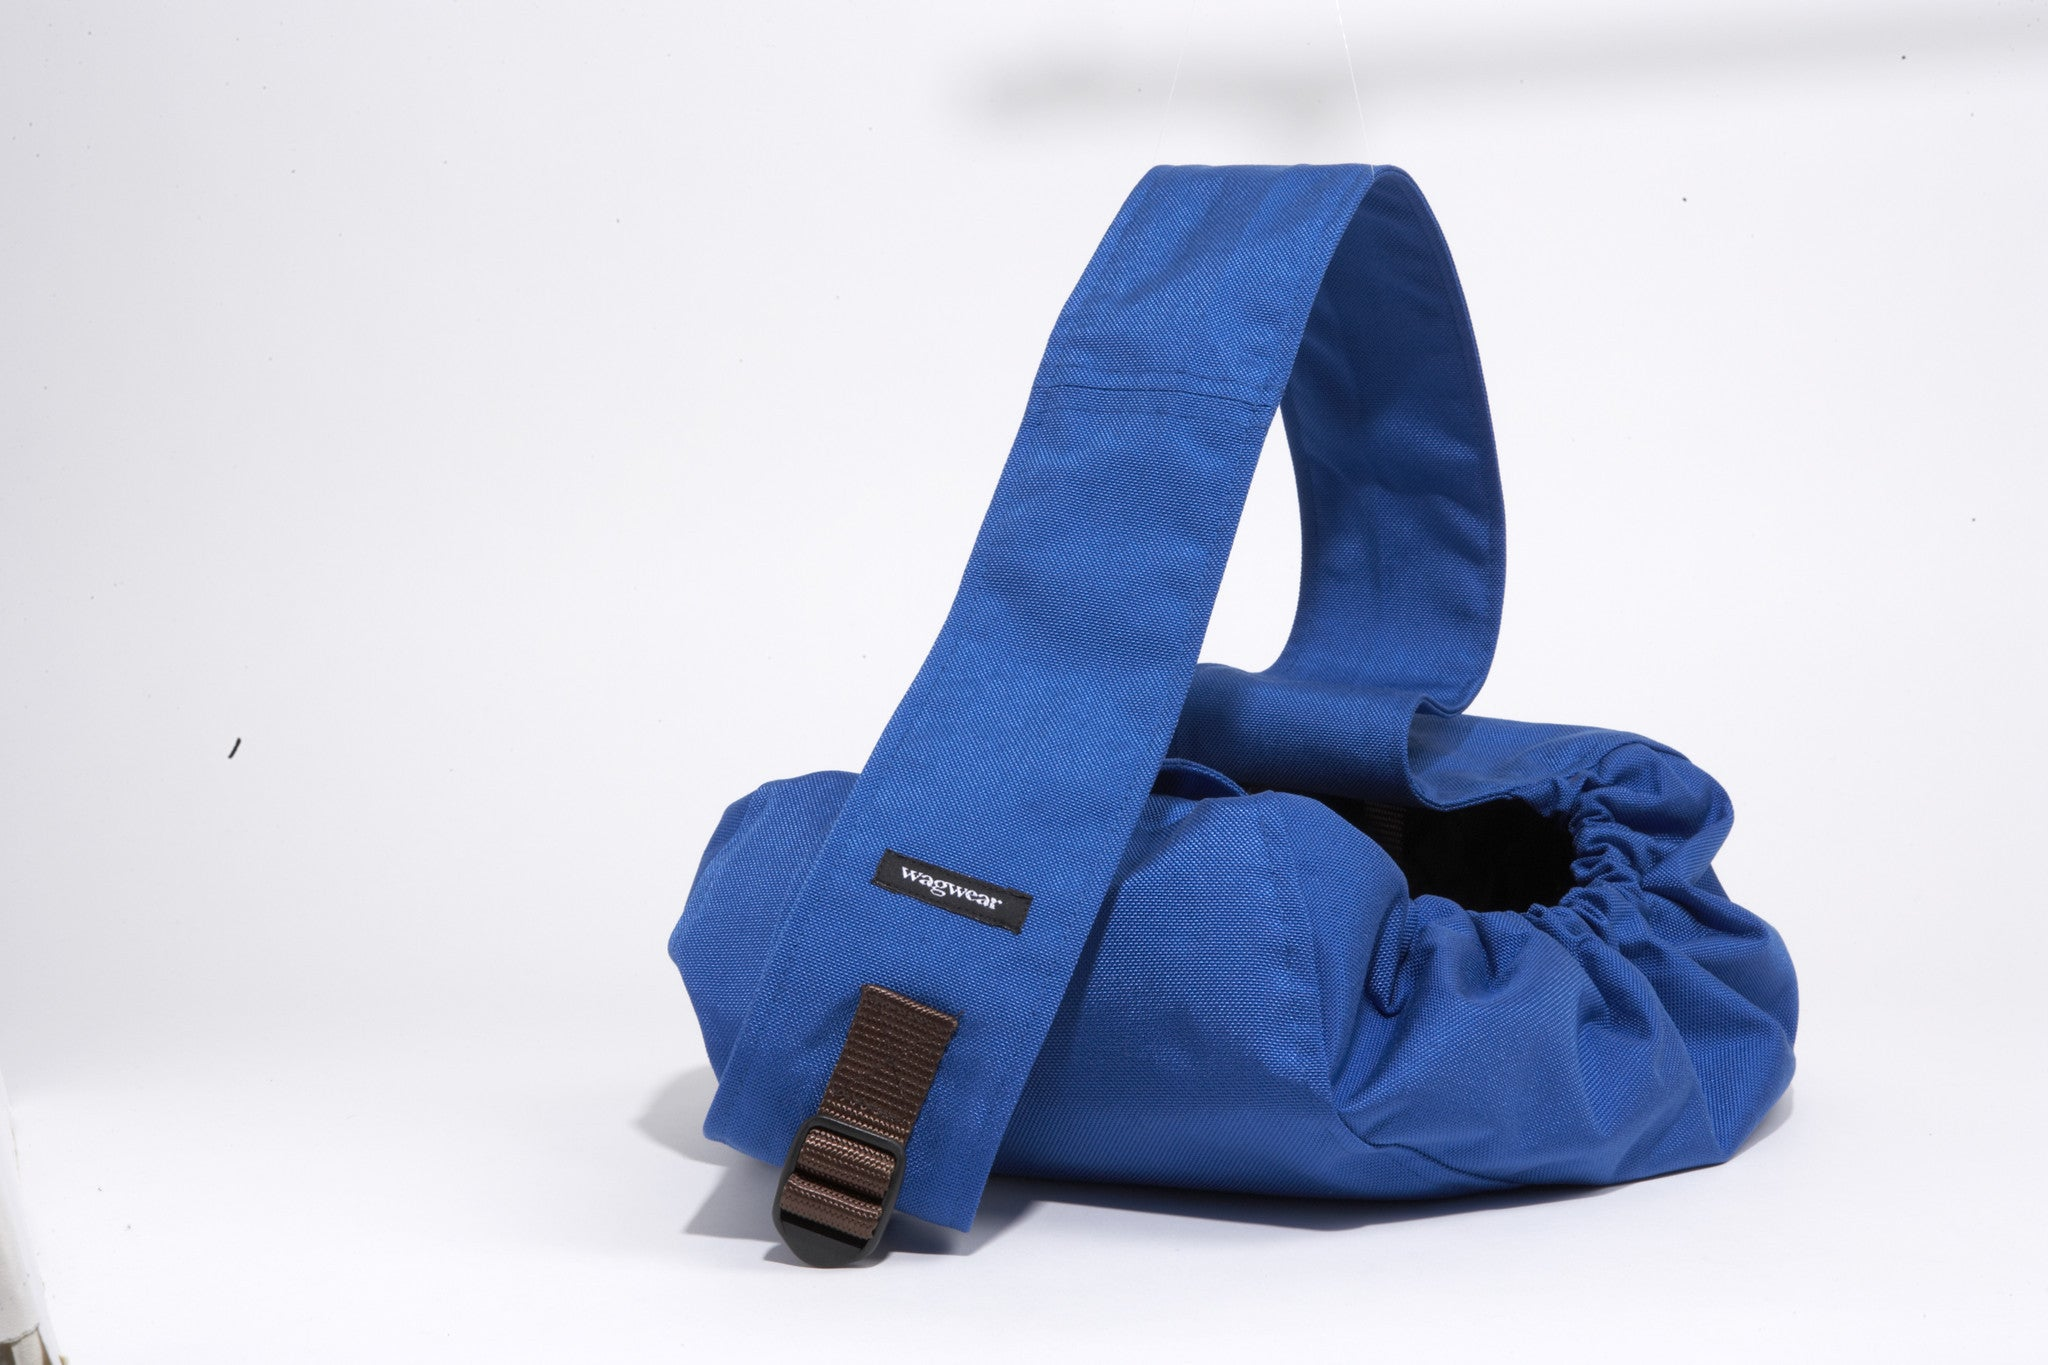 Wagwear Pouch | Messenger Pouch | Open pouch | Dog Carrier | 7 Color Options